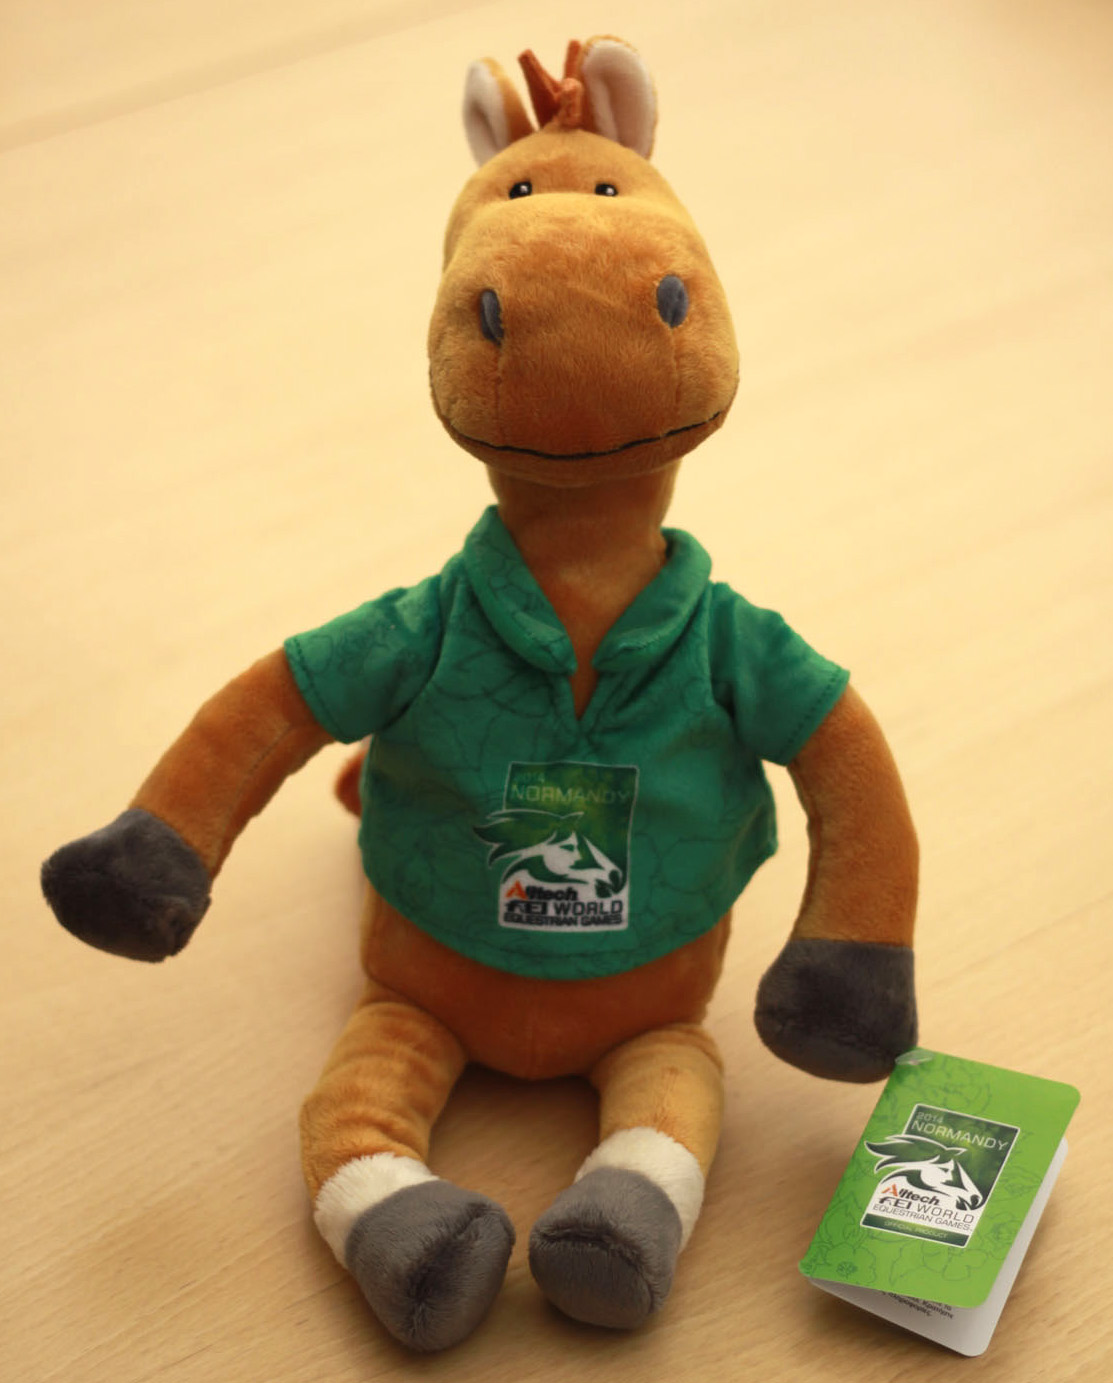 Norman 3 - Meet Norman the official mascot to the Alltech FEI World Equestrian Games 2014